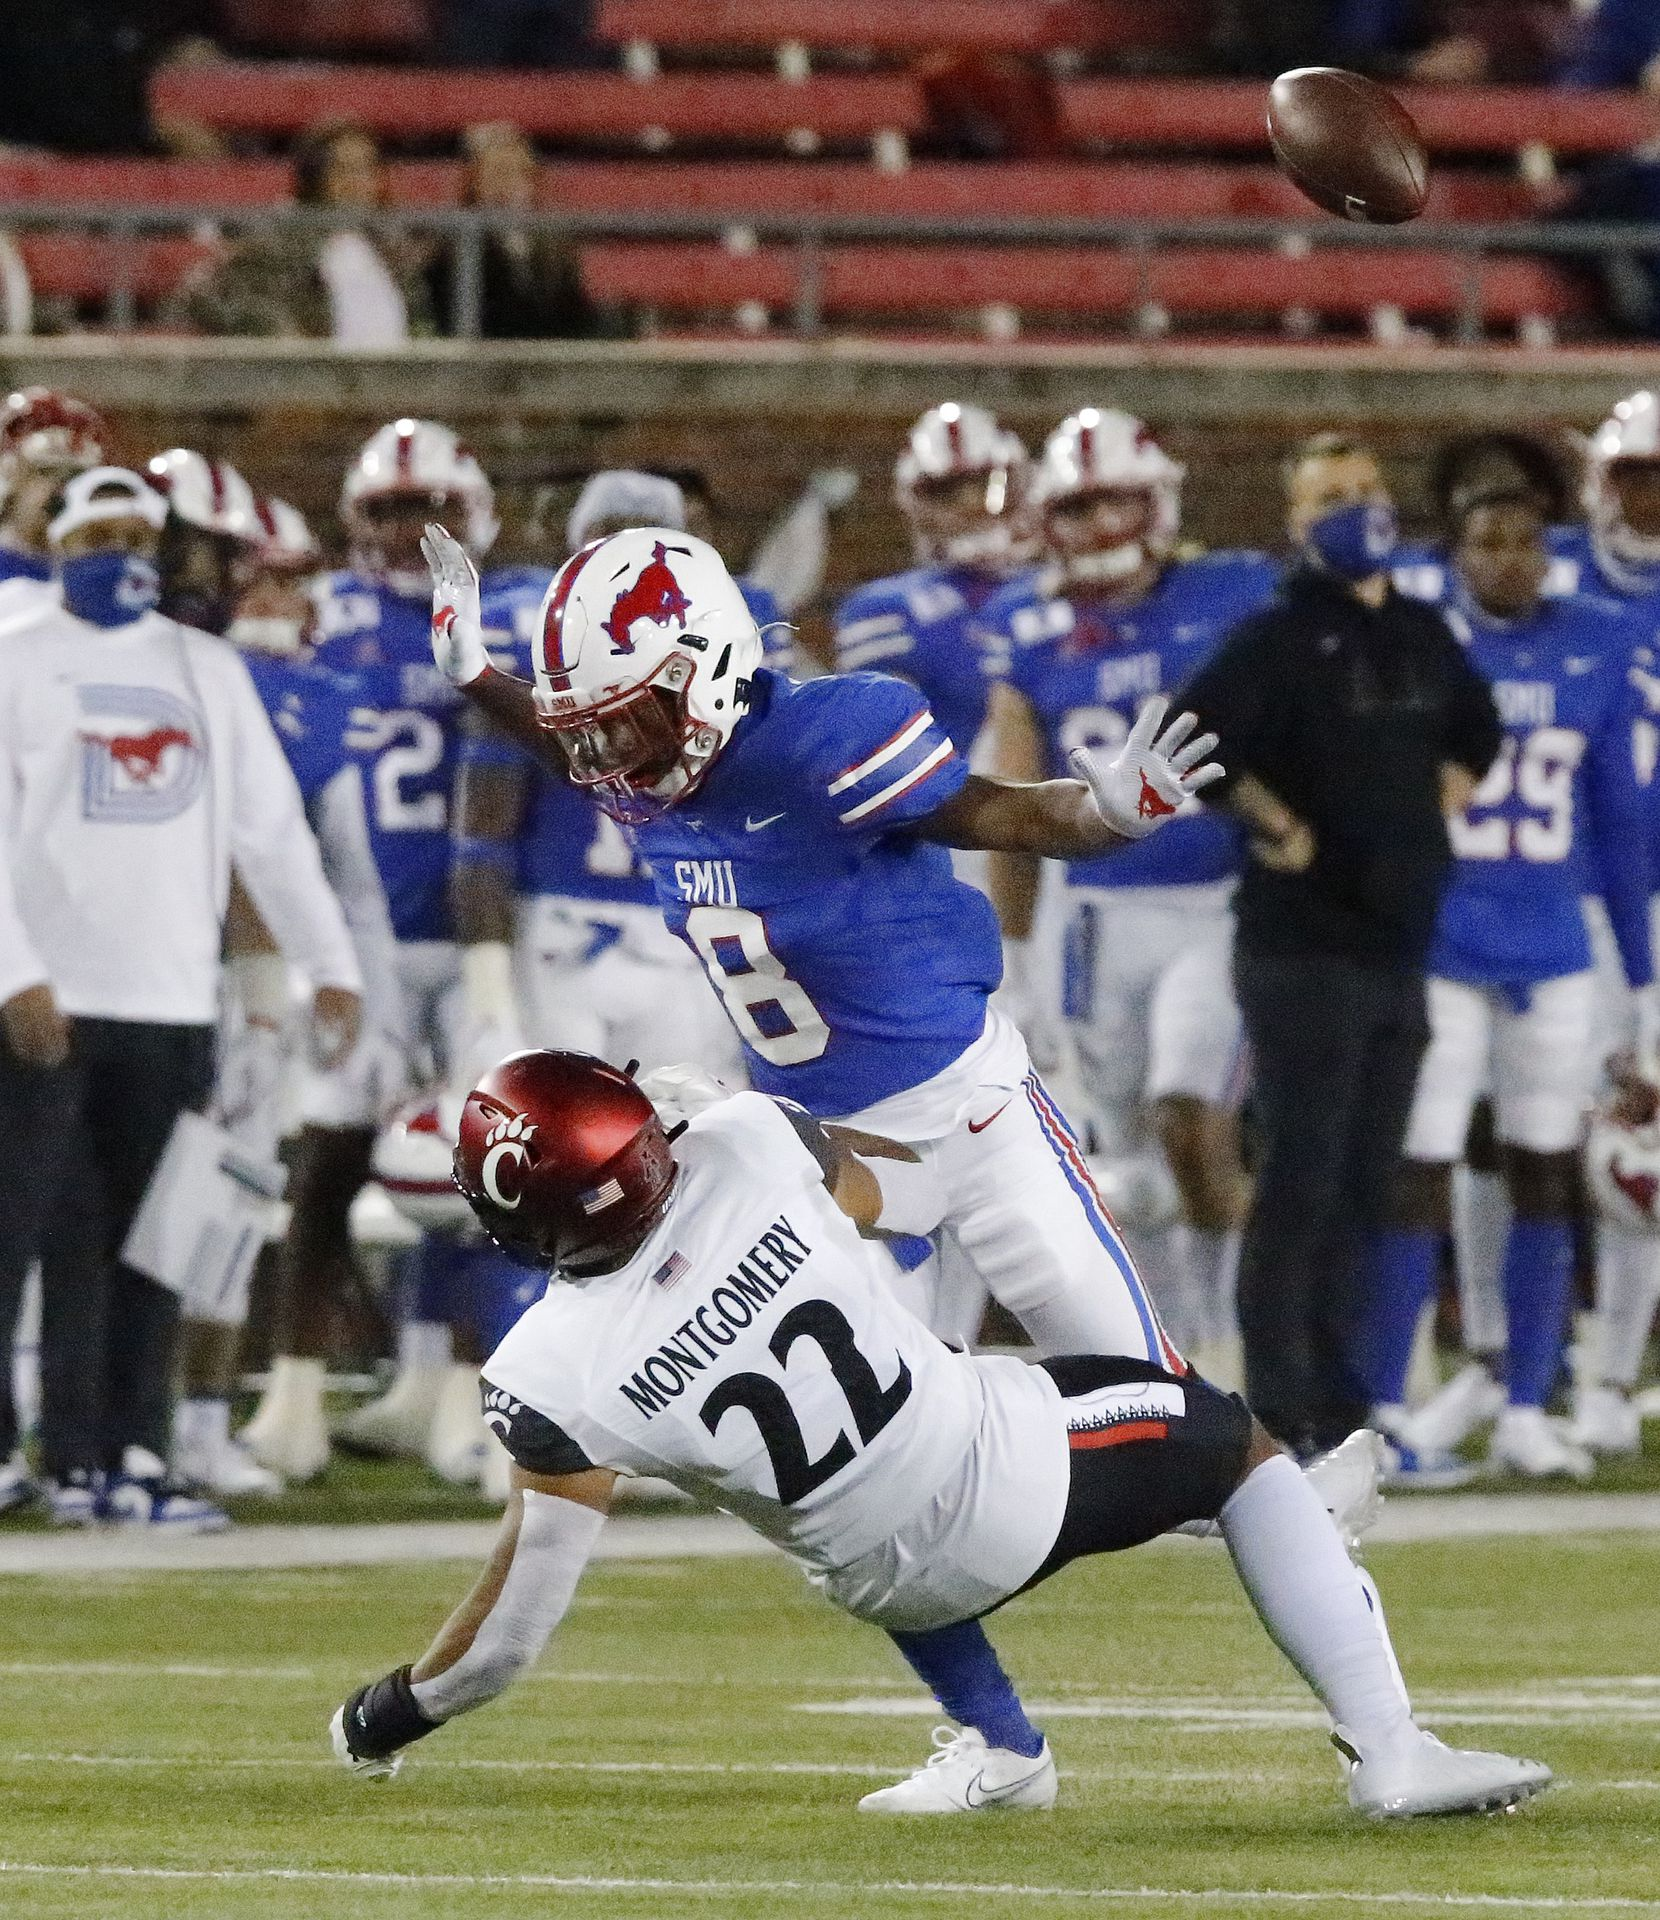 Southern Methodist Mustangs cornerback Bryan Massey (8) runs into Cincinnati Bearcats punt returner Ryan Montgomery (22) during the first half as SMU hosted Cincinati University in an AAC football game at Ford Stadium in Dallas on Saturday night, October 24, 2020. (Stewart F. House/Special Contributor)